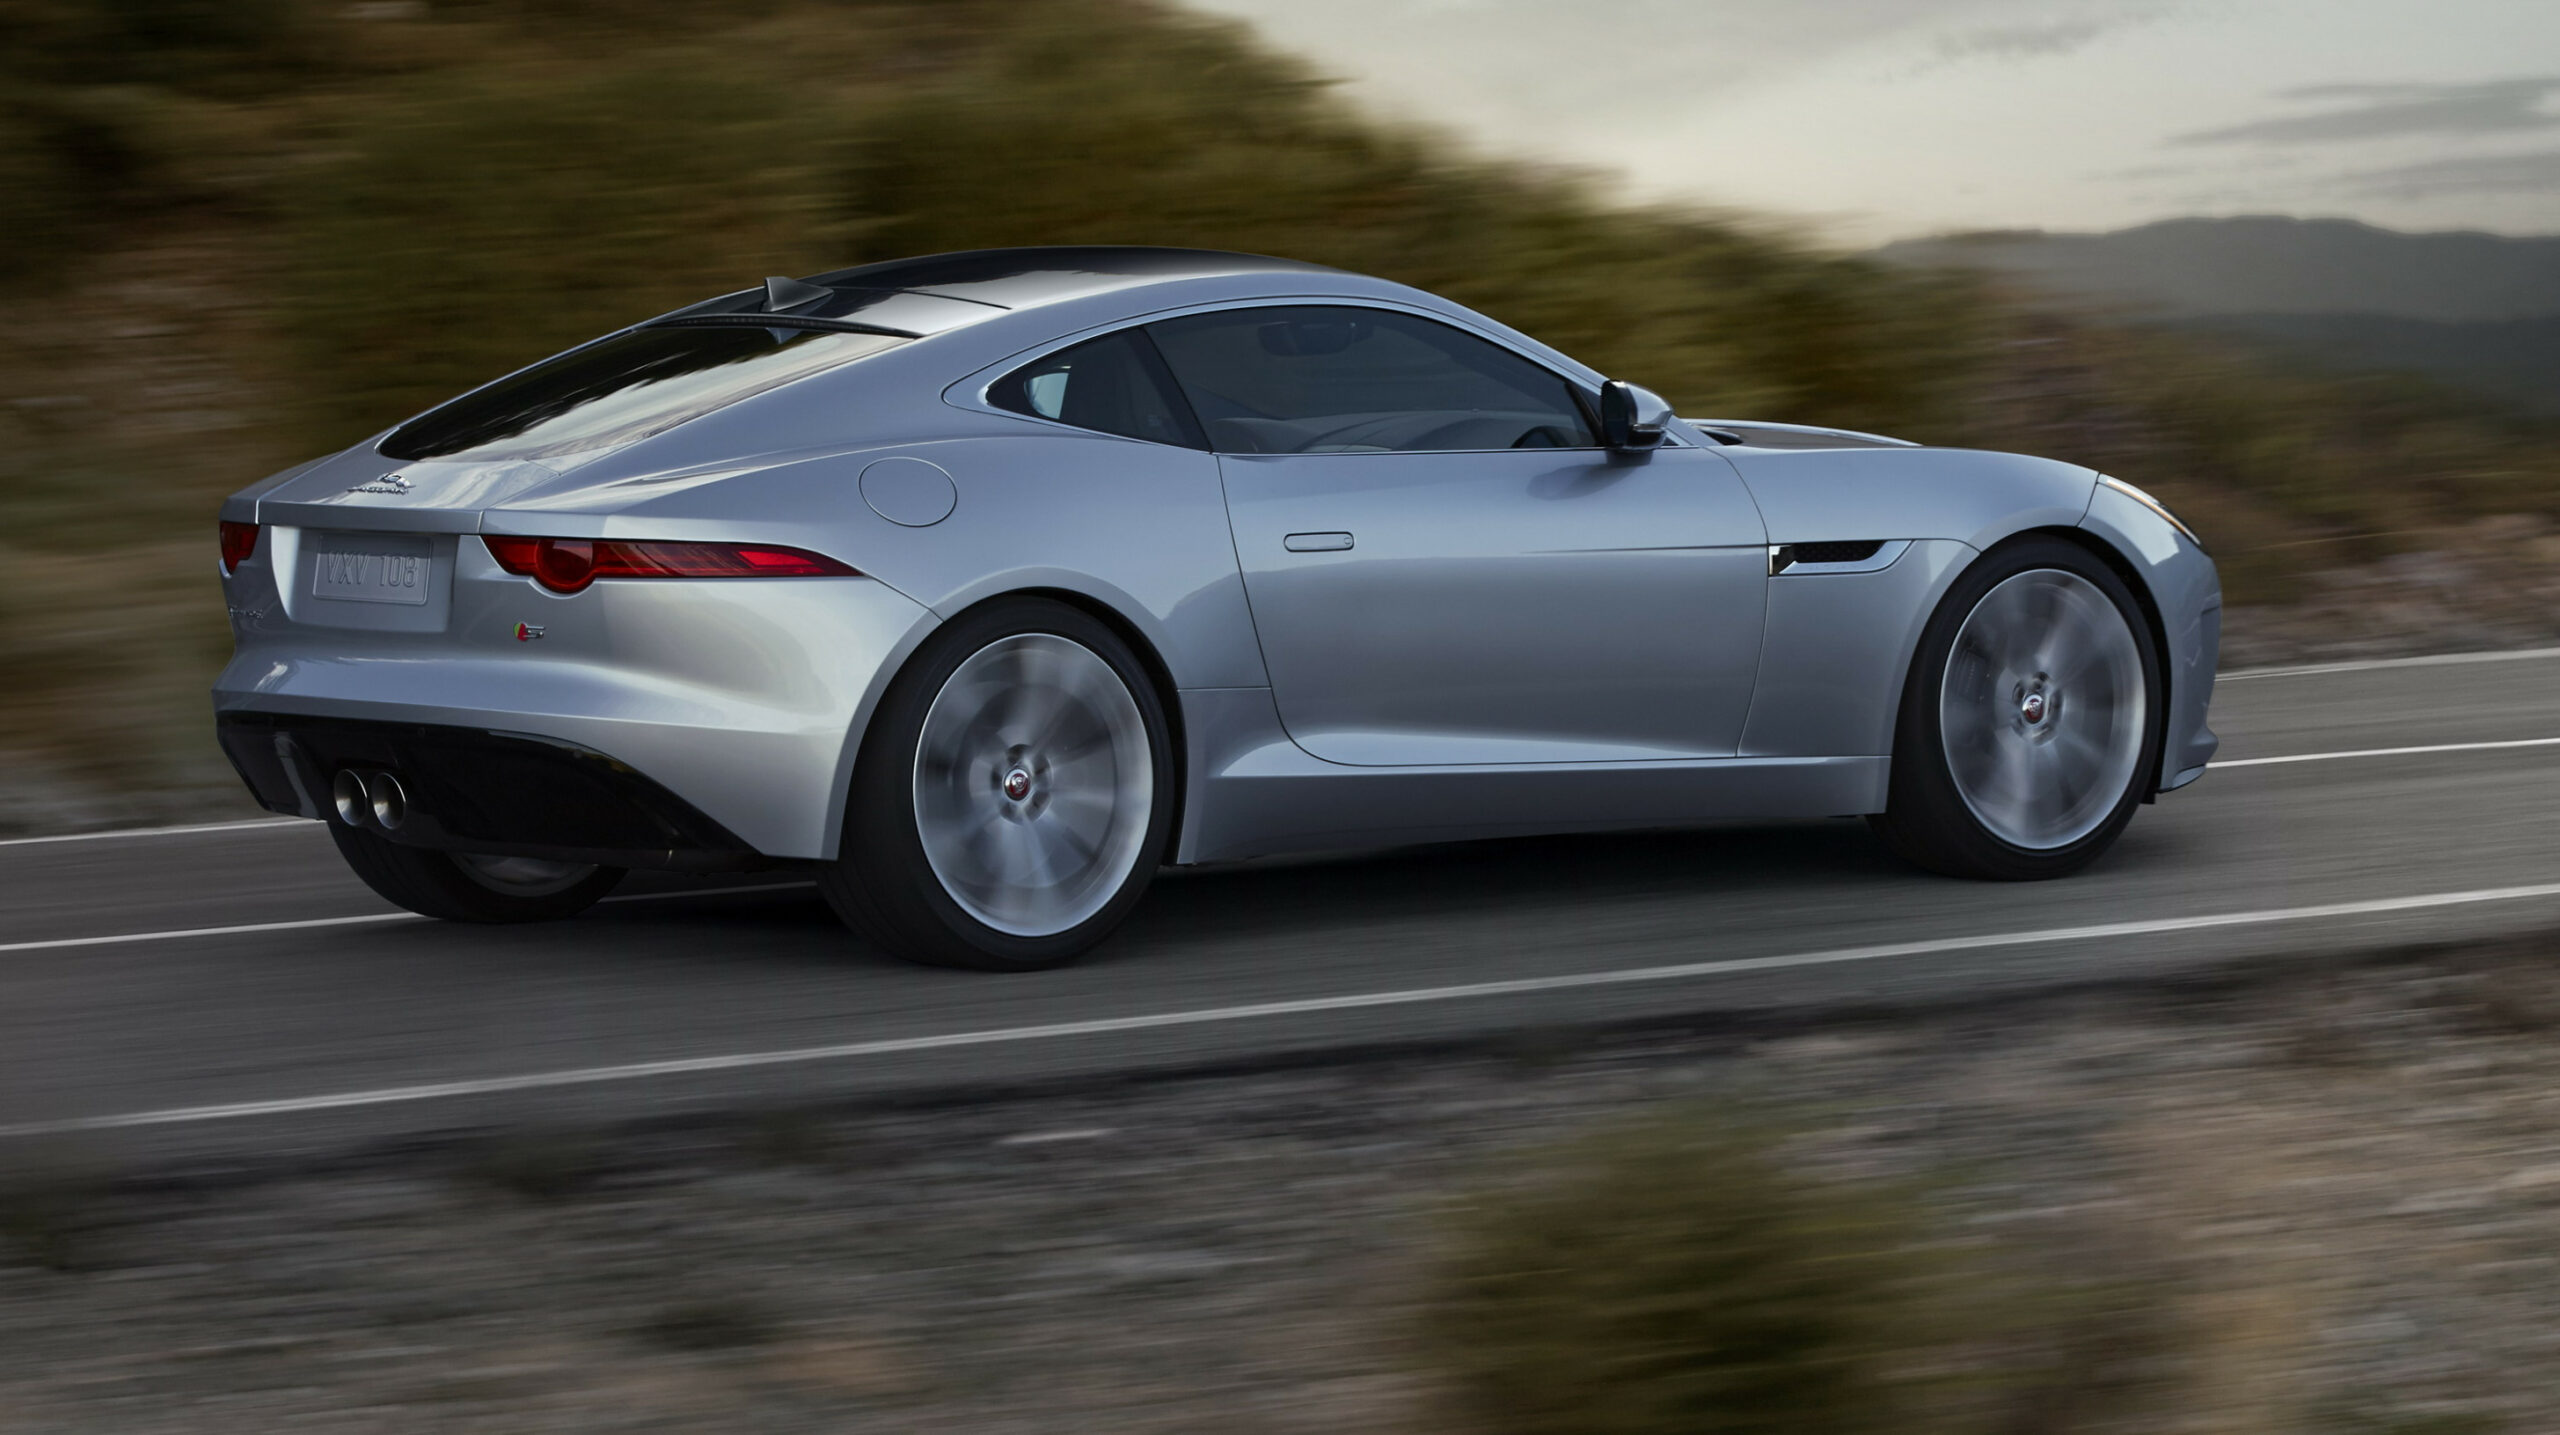 Performance and New Engine 2022 Jaguar F-Type